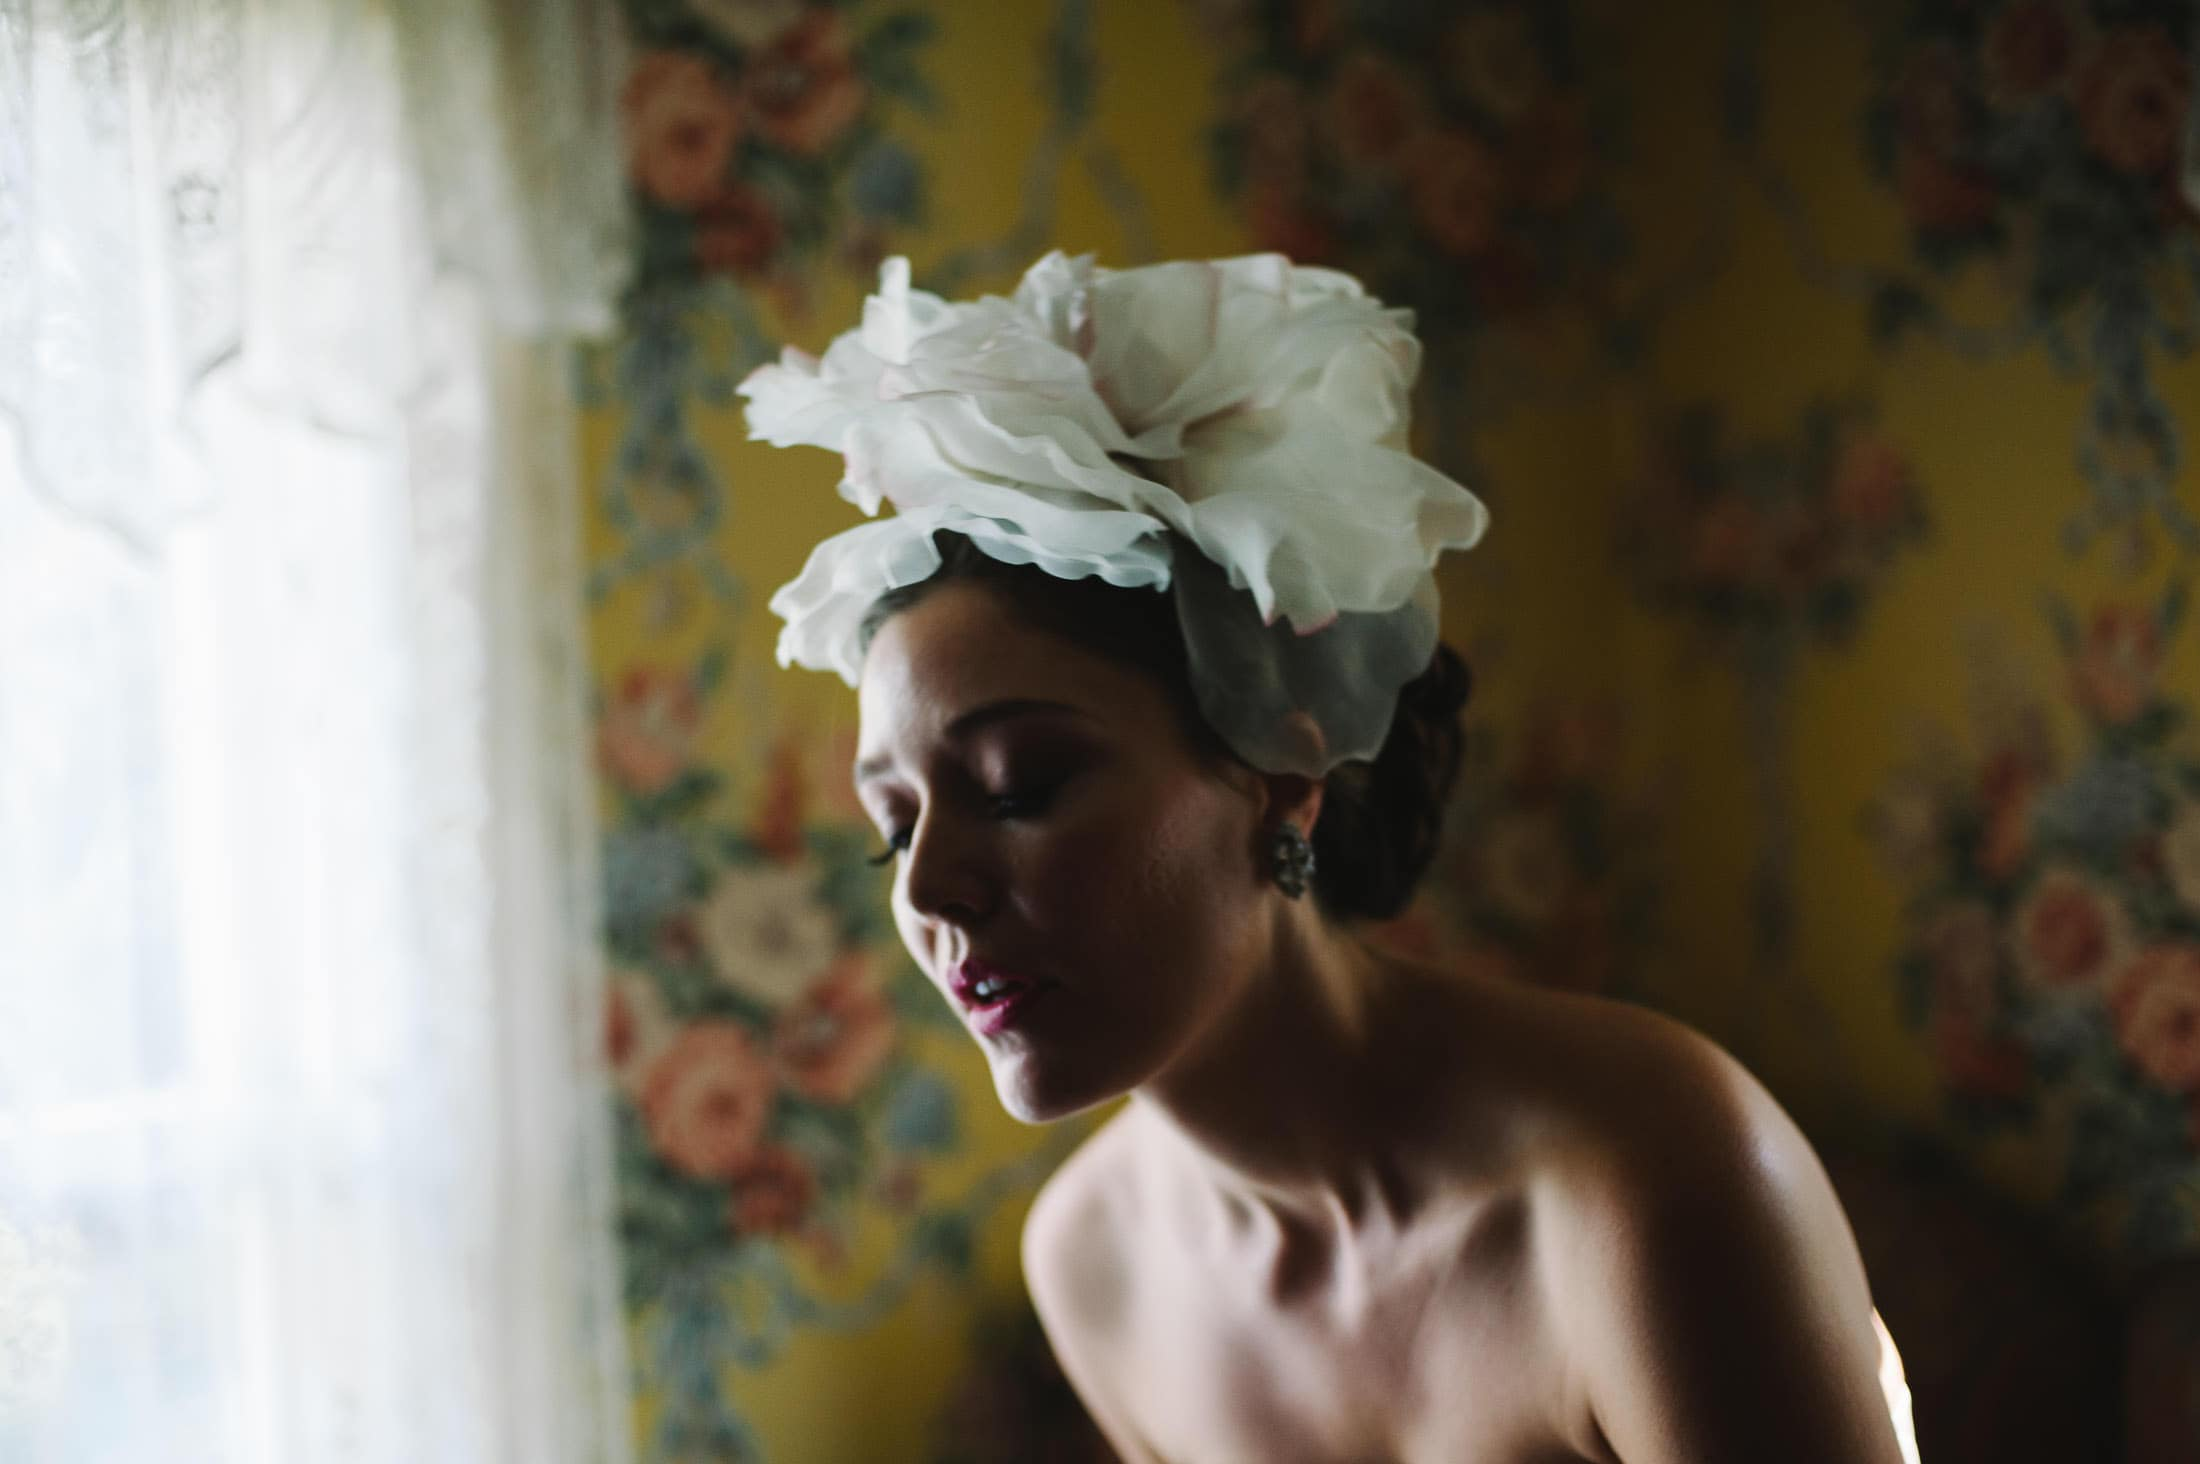 fun artistic shot of bride against floral wall paper at Atherton Wedding